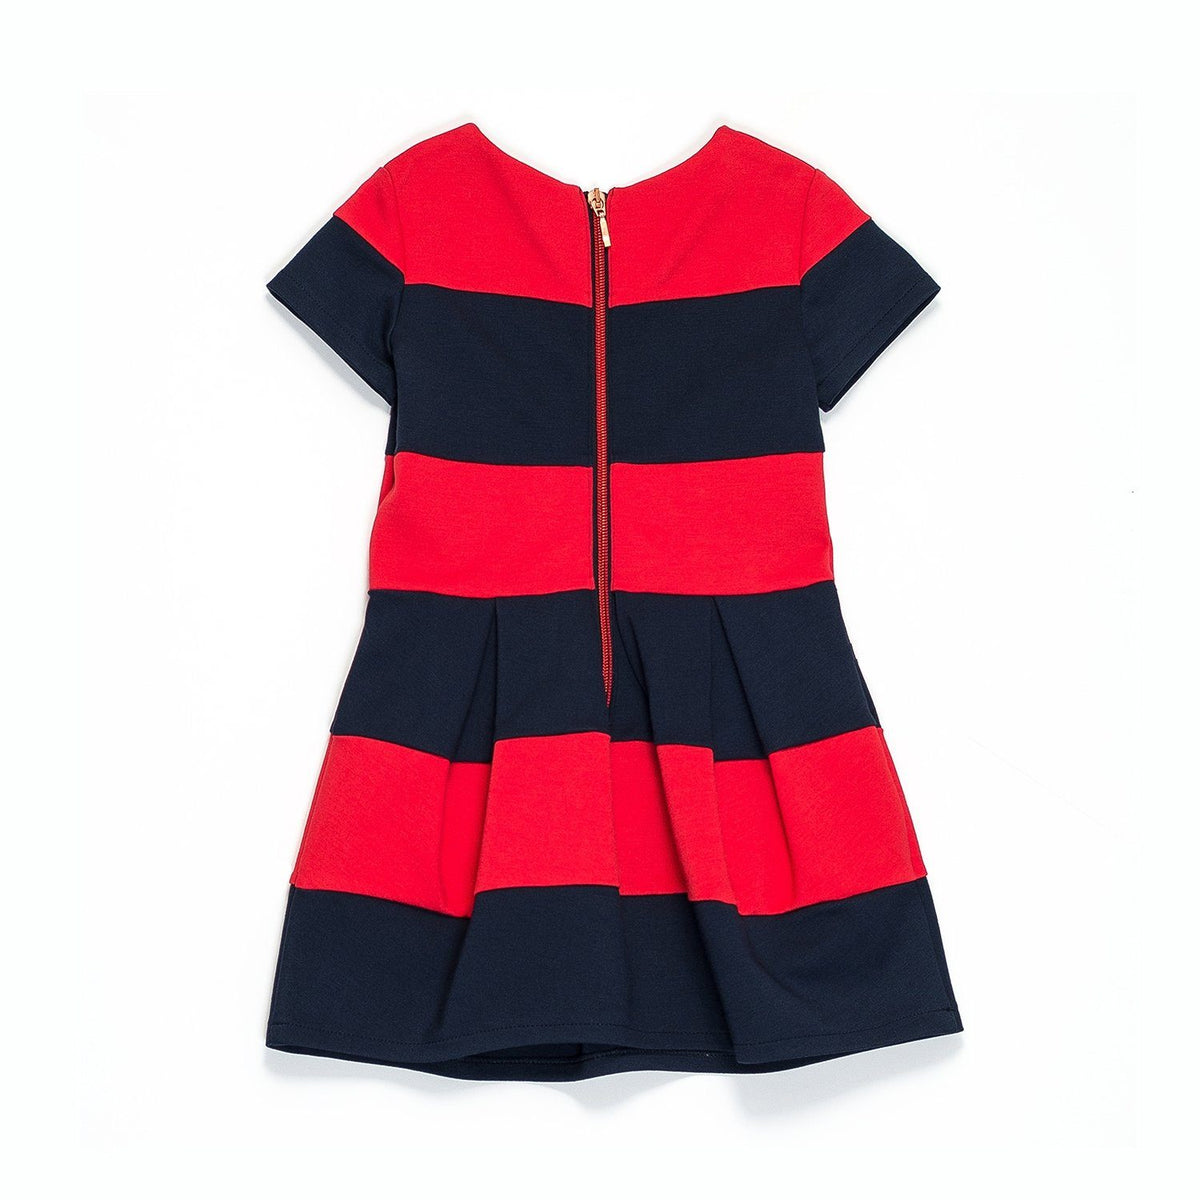 Junior Gaultier - Dress With Bold Stripes, Red And Blue